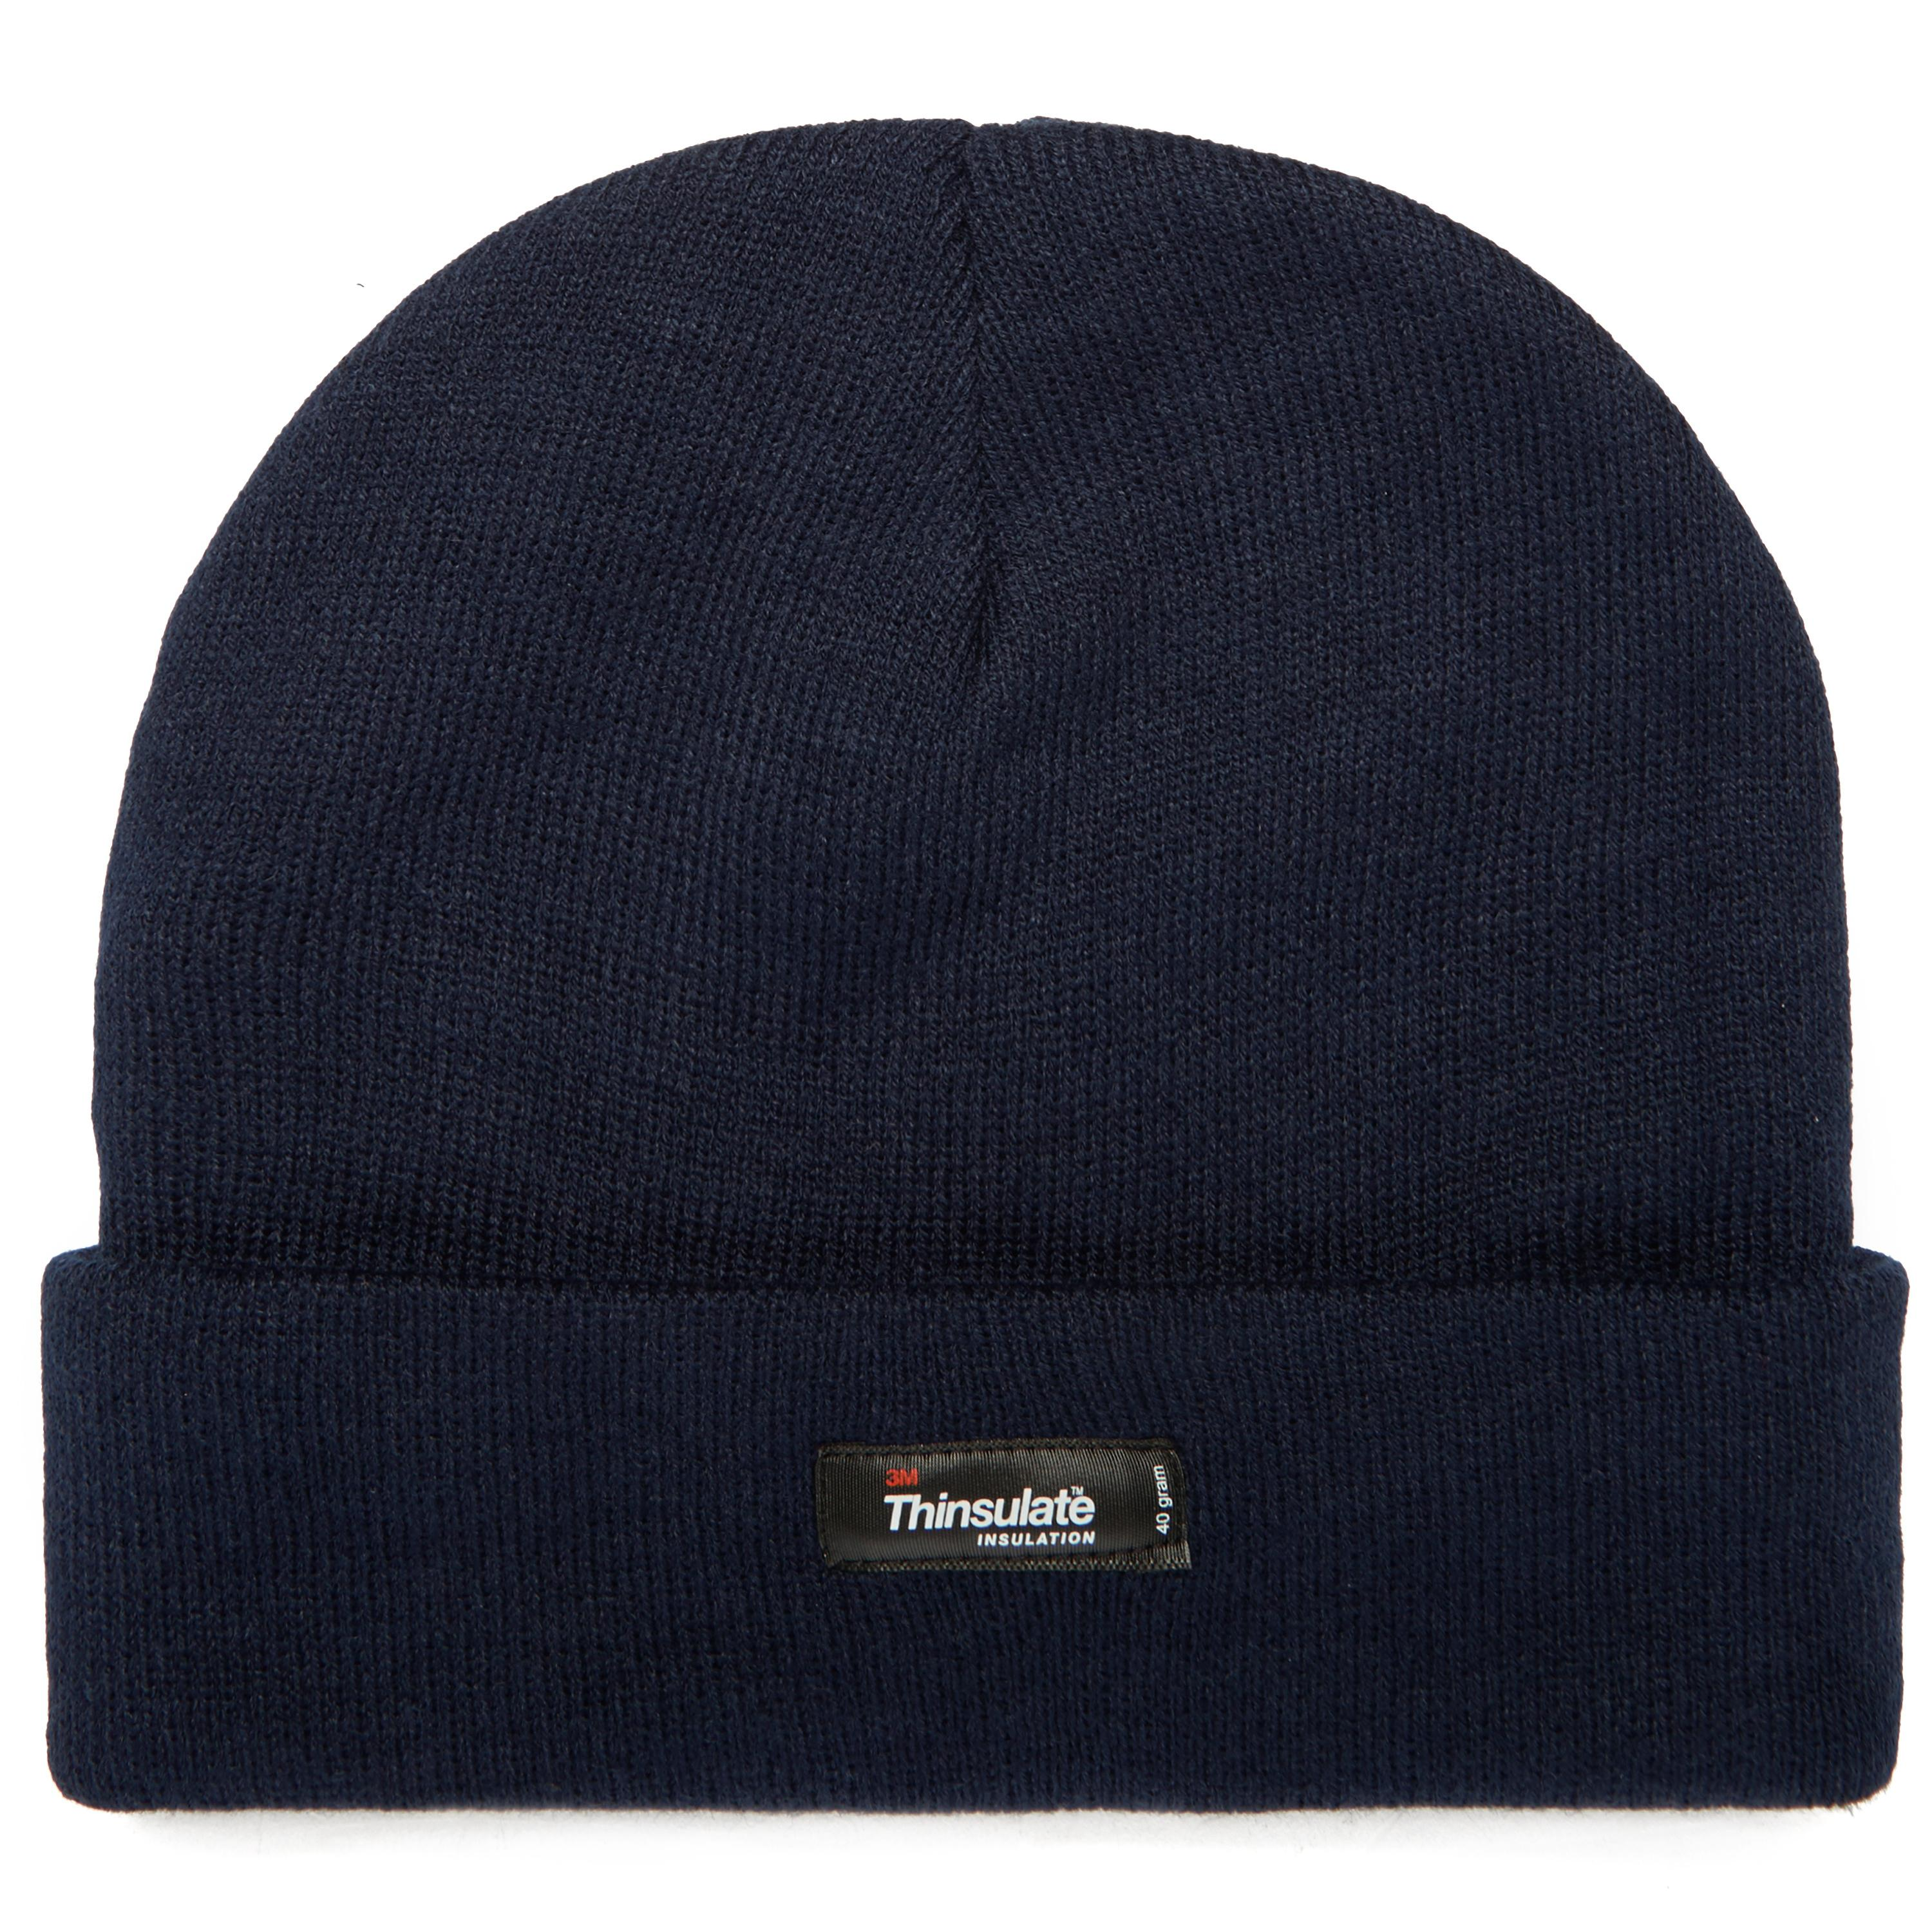 Thinsulate Woolly Hat acf322616a1